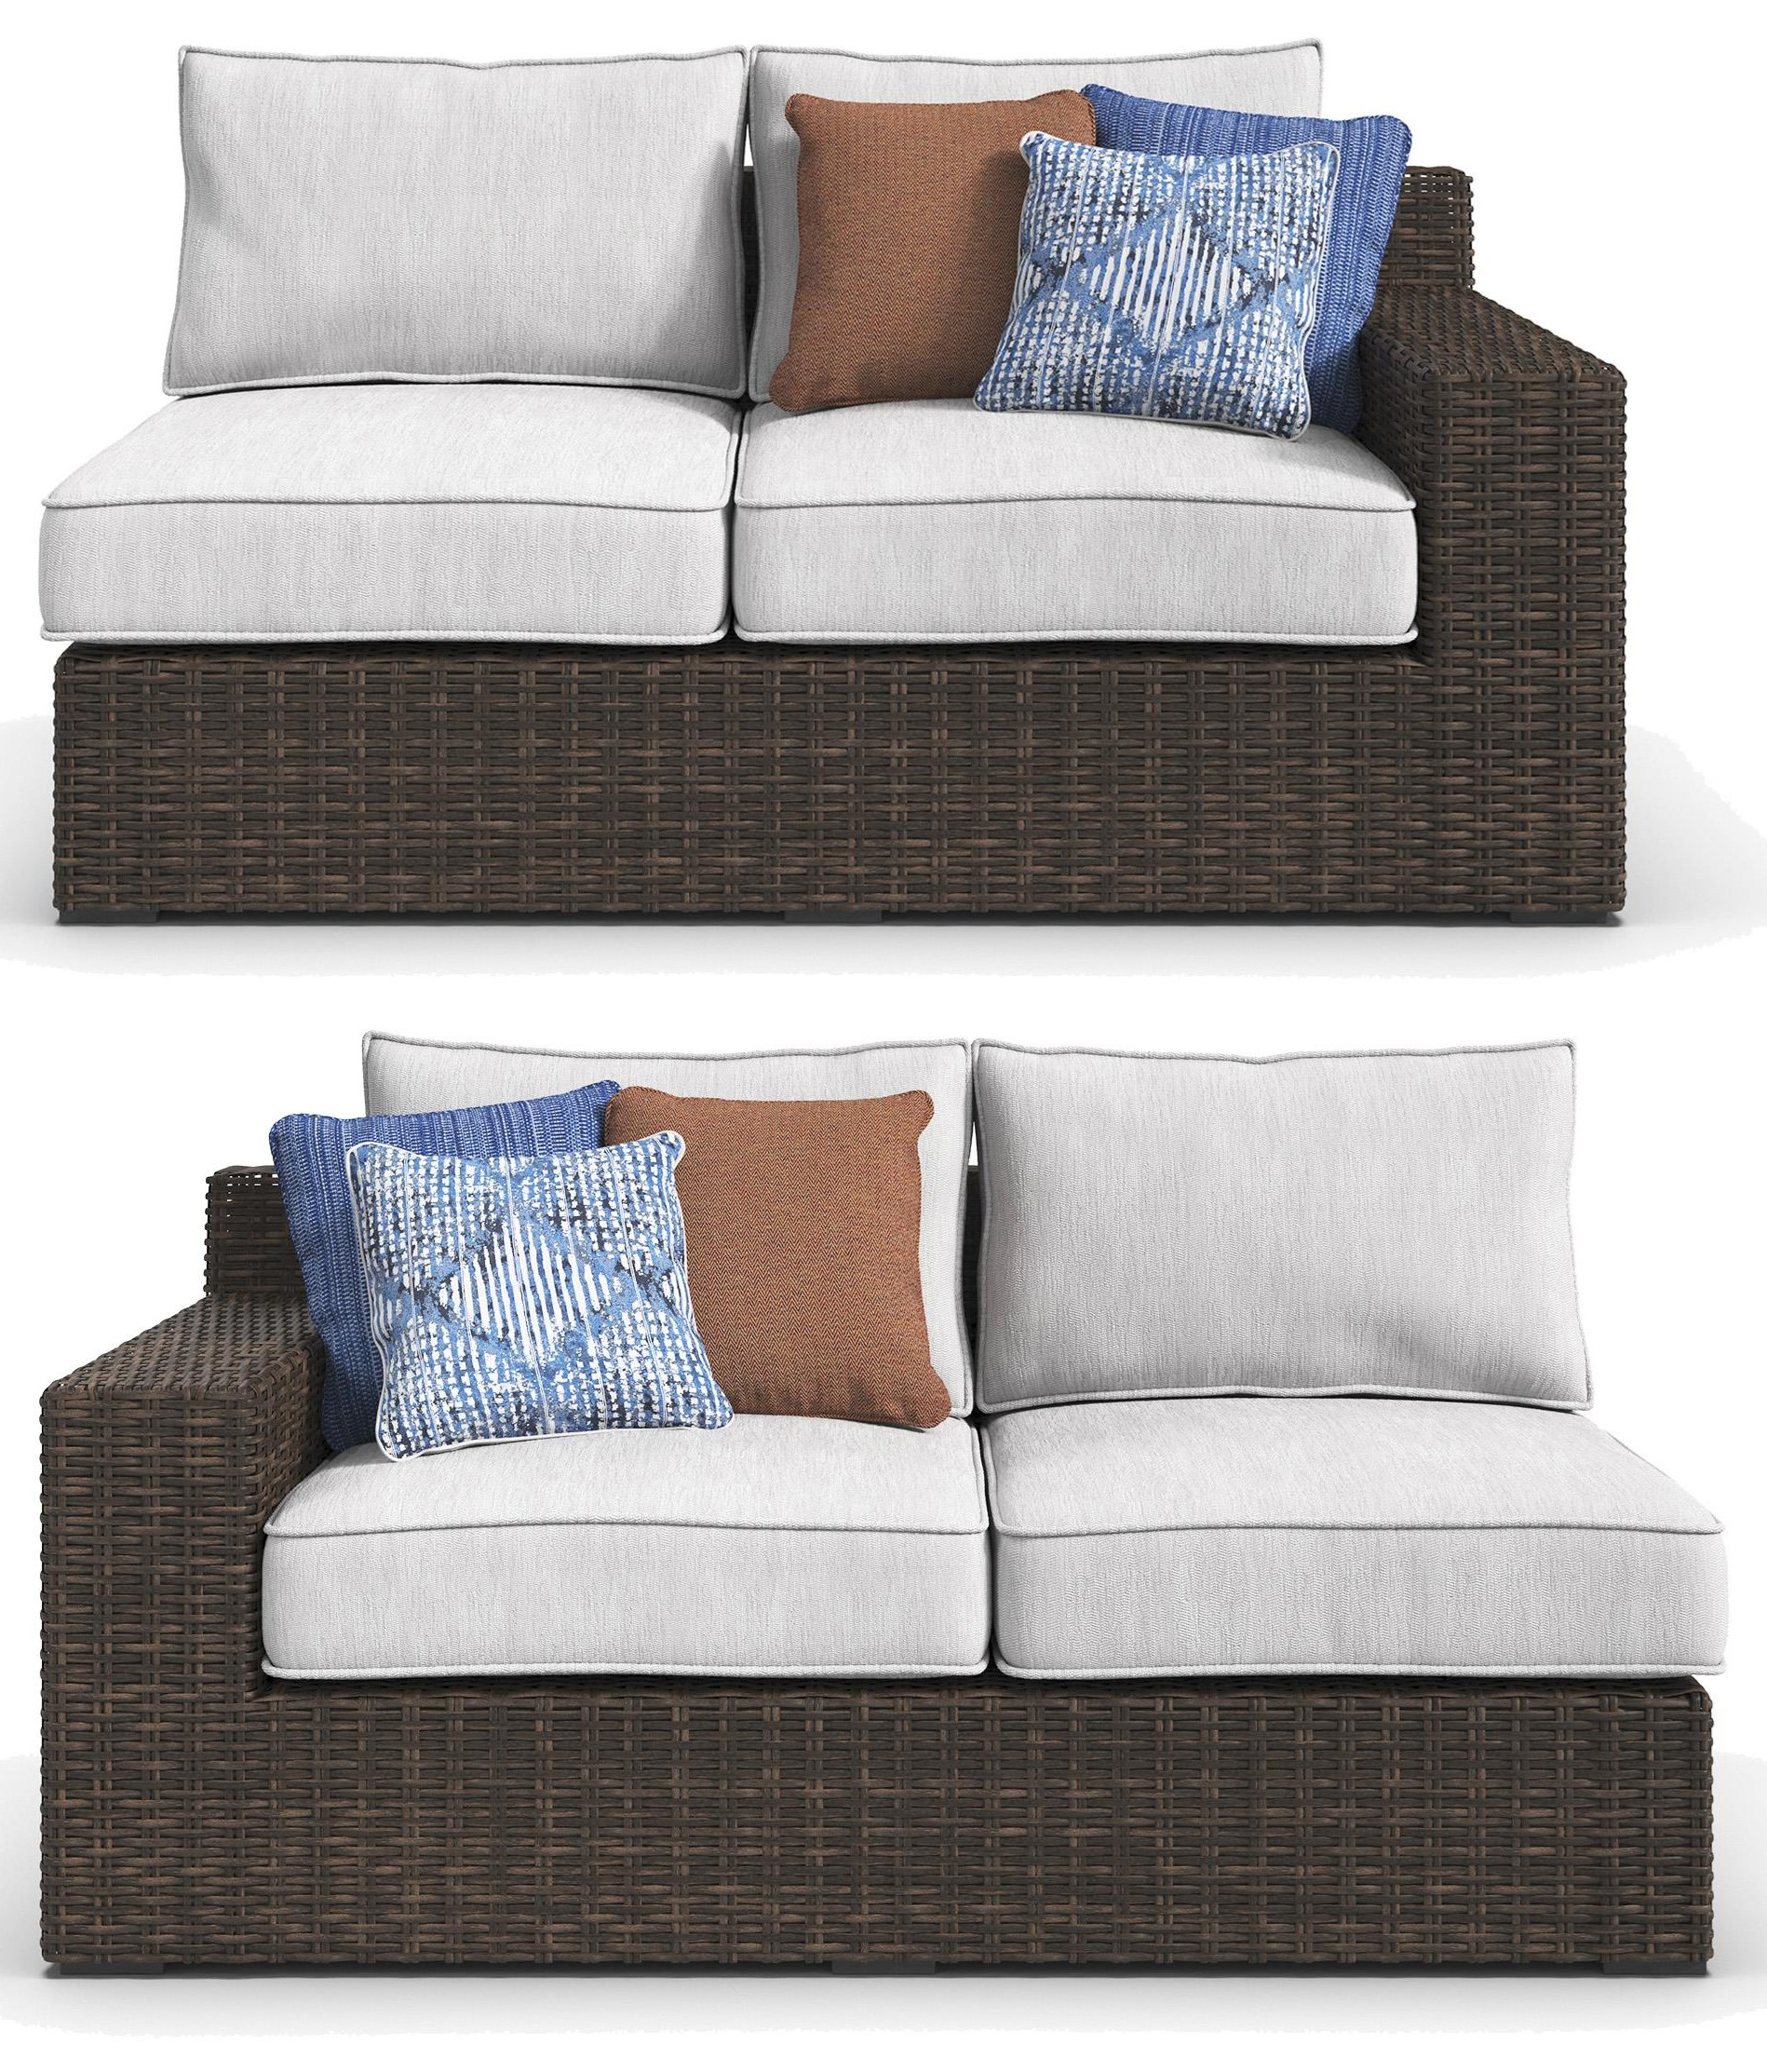 loveseat cushions birch reviews lane wicker with cushion lawson pdp outdoor